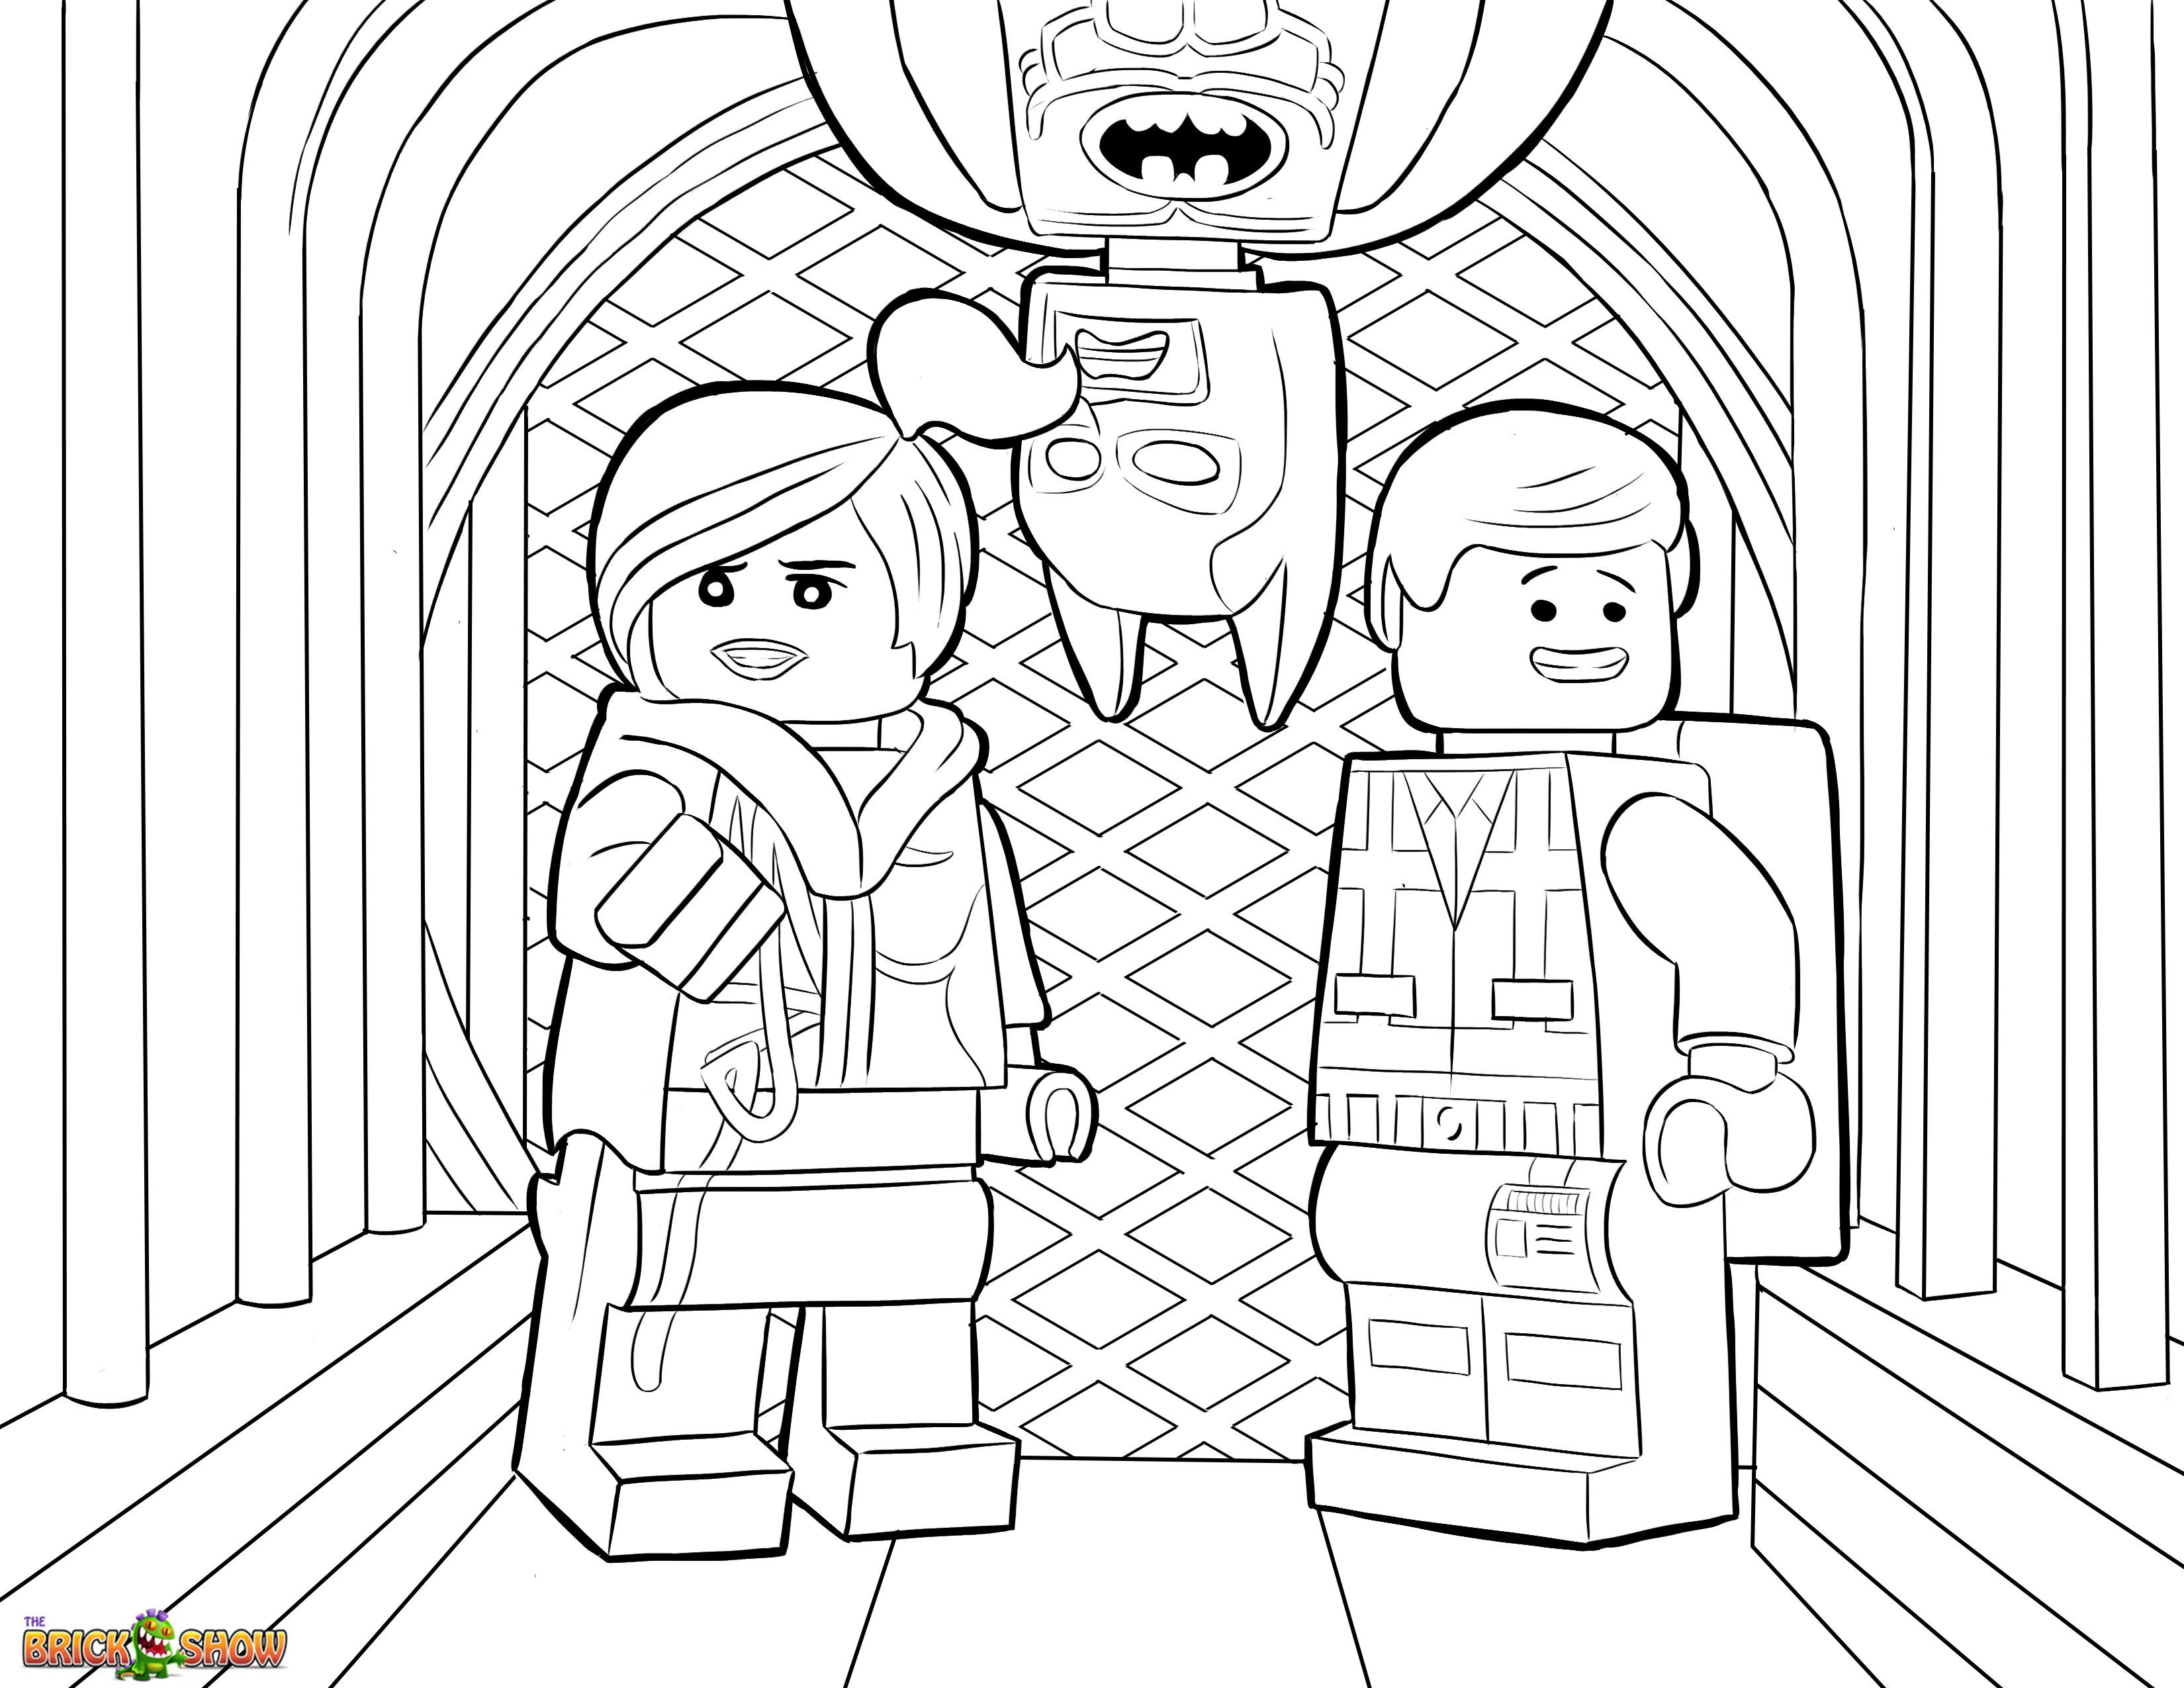 the lego movie coloring pages the lego movie coloring page lego wyldstyle emmet movie coloring pages lego the